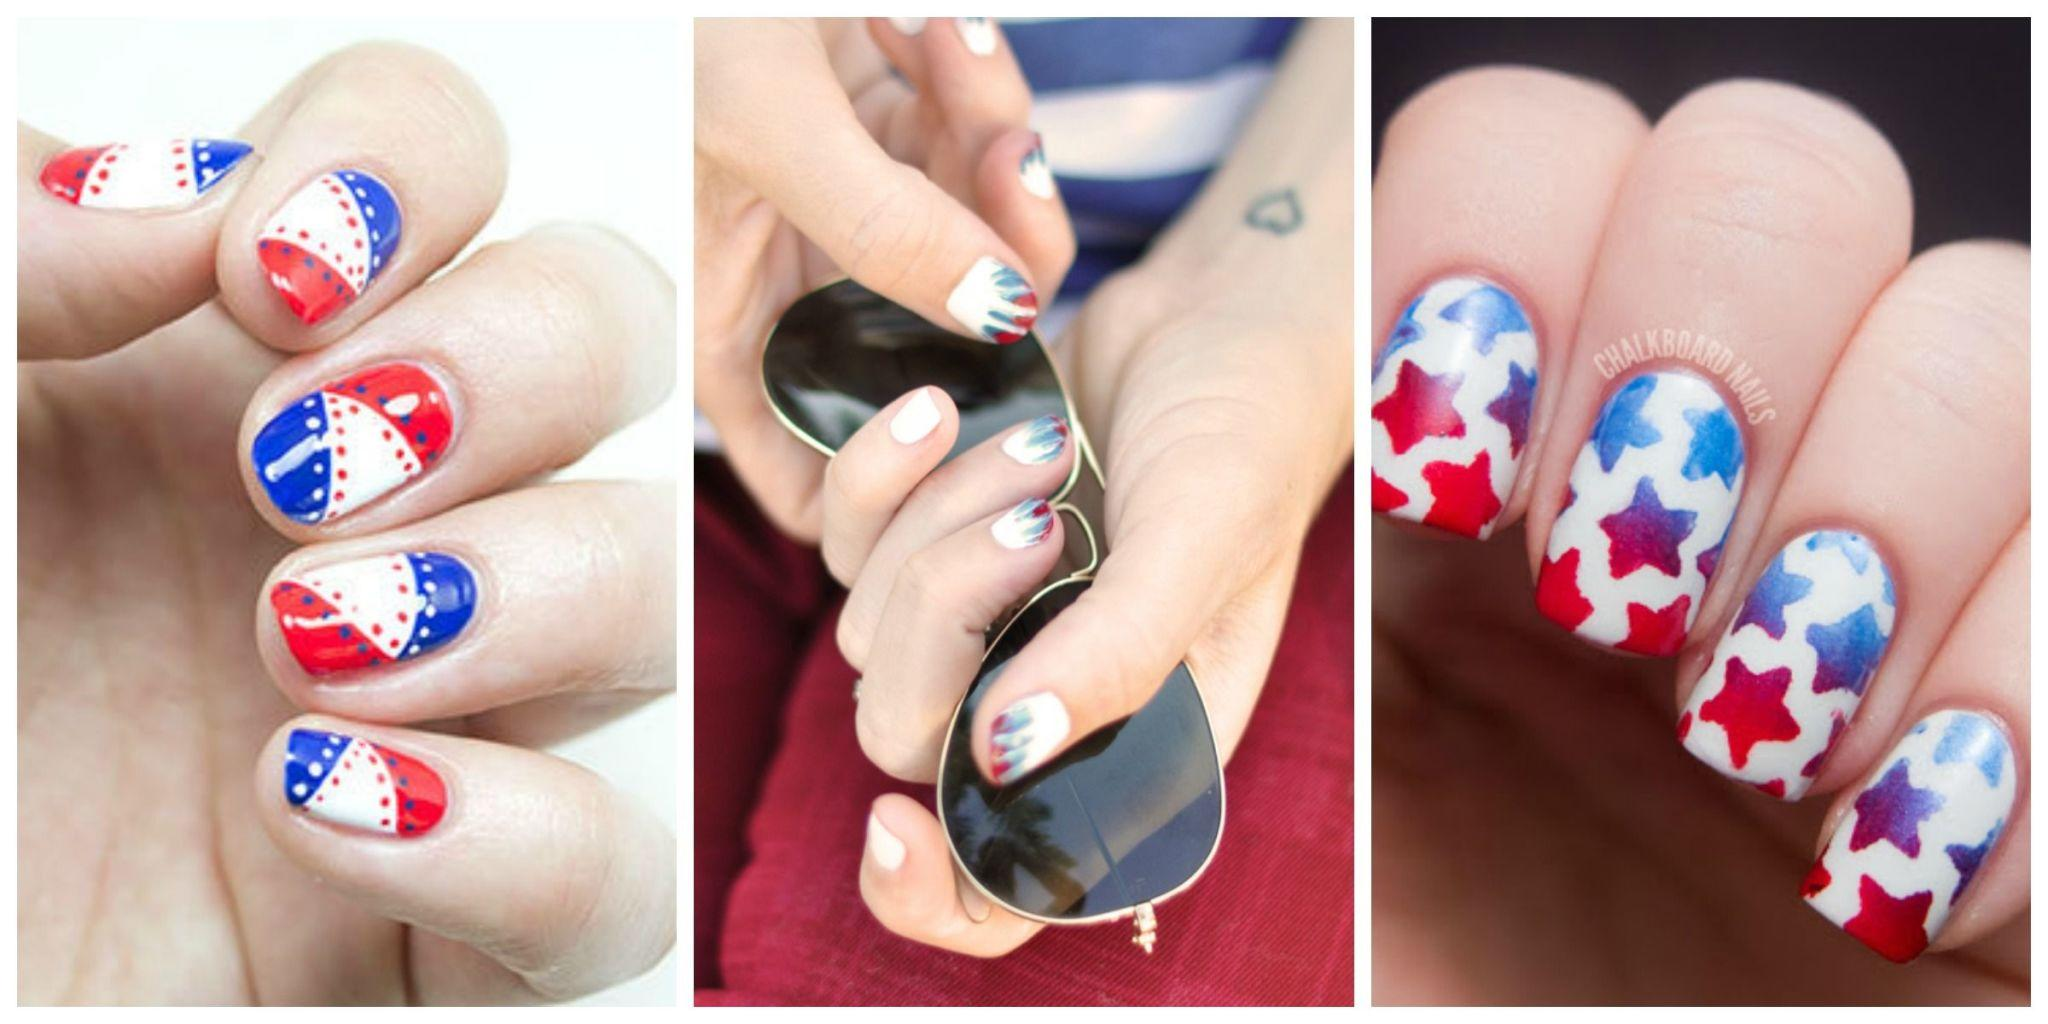 15 Patriotic Nail Art Ideas For The 4th Of July